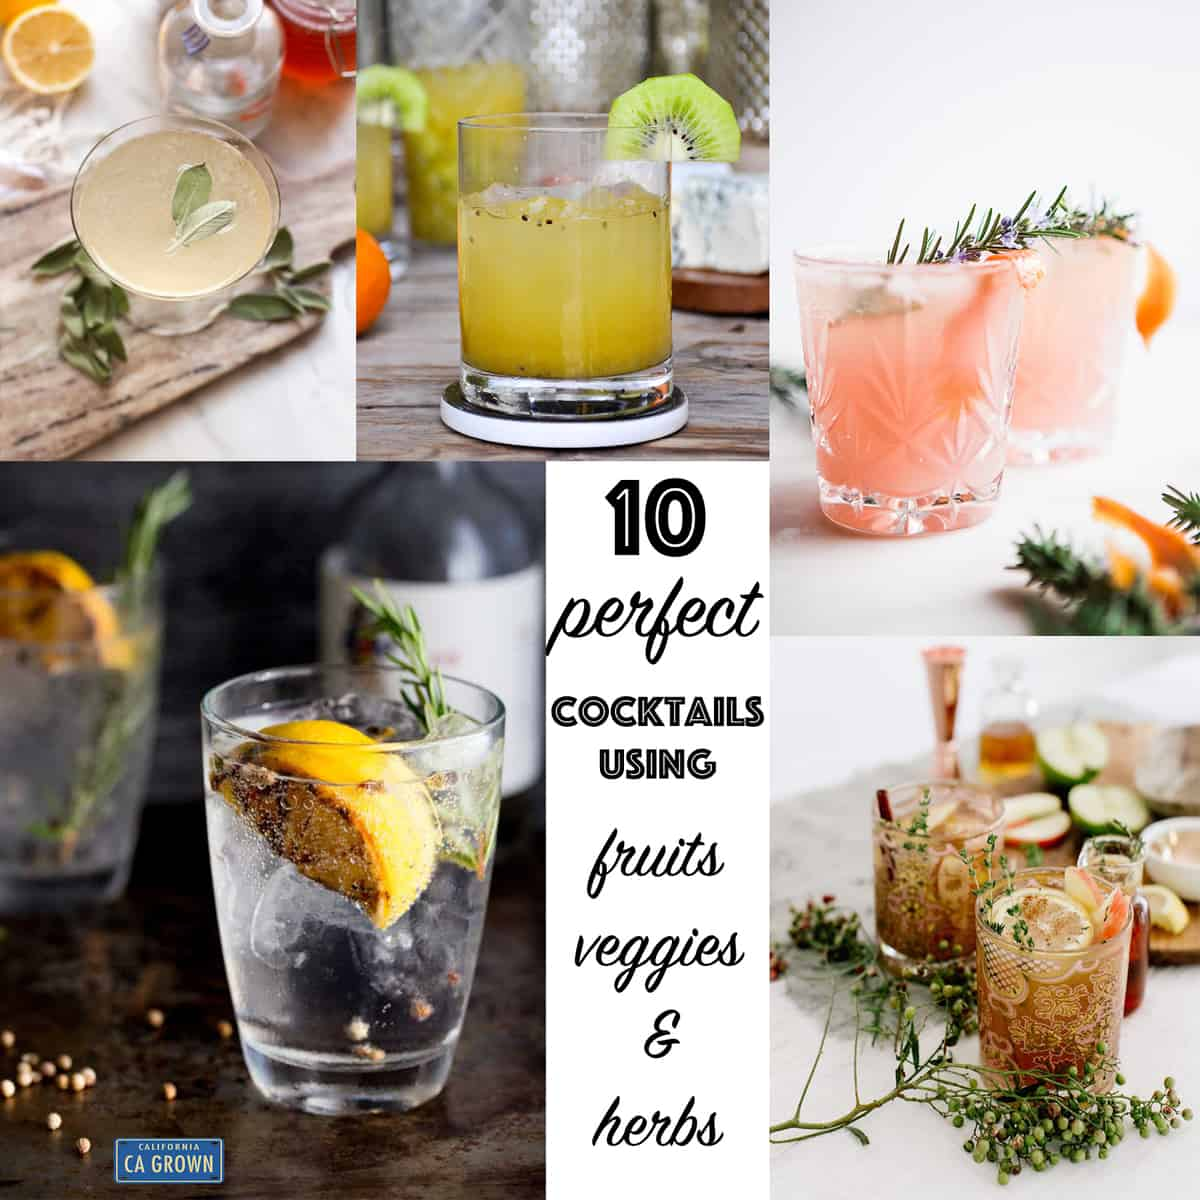 10 Perfect Cocktails using Fruits and Veggies